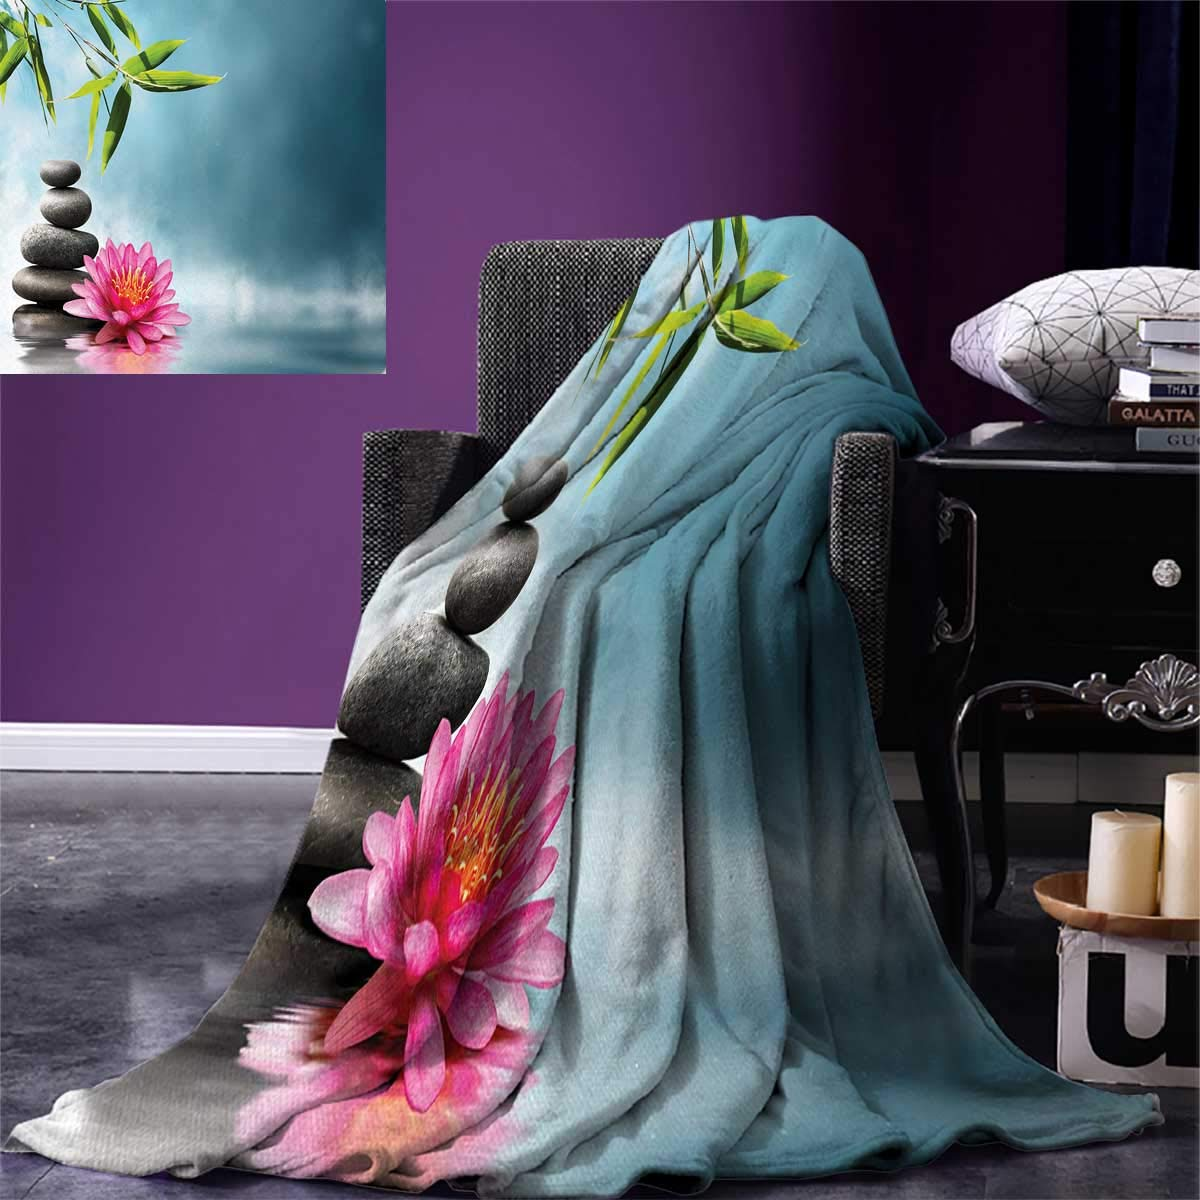 Spa Digital Printing Blanket Spa Theme with Lily Lotus Flower and Rocks Yoga Style Purifying Your Soul Theme Summer Quilt Comforter 80''x60'' Blue Pink Green